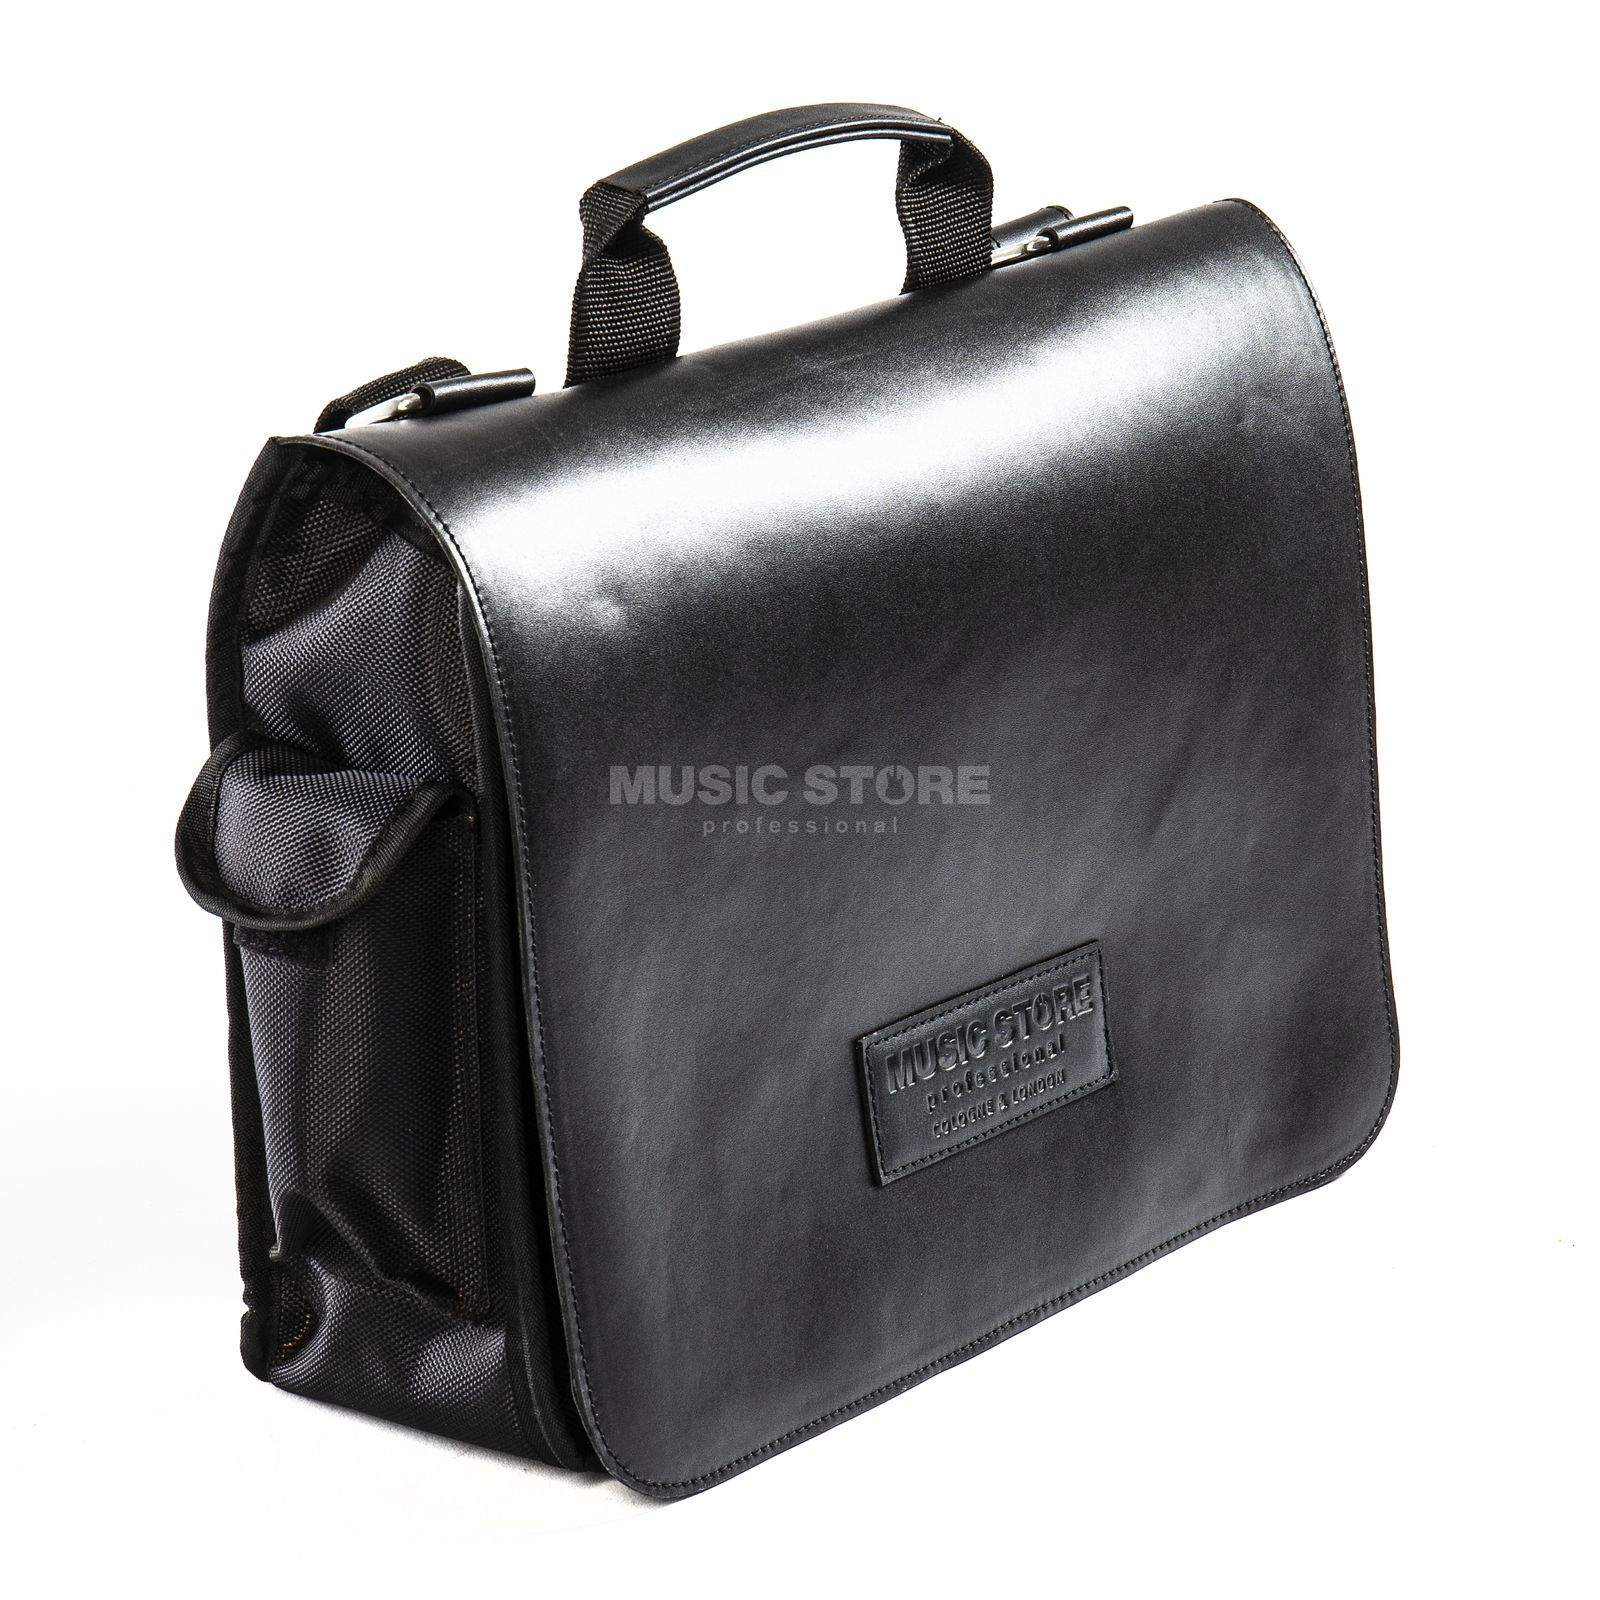 MUSIC STORE Executive Bag Black EXB-01MBK/6L Product Image